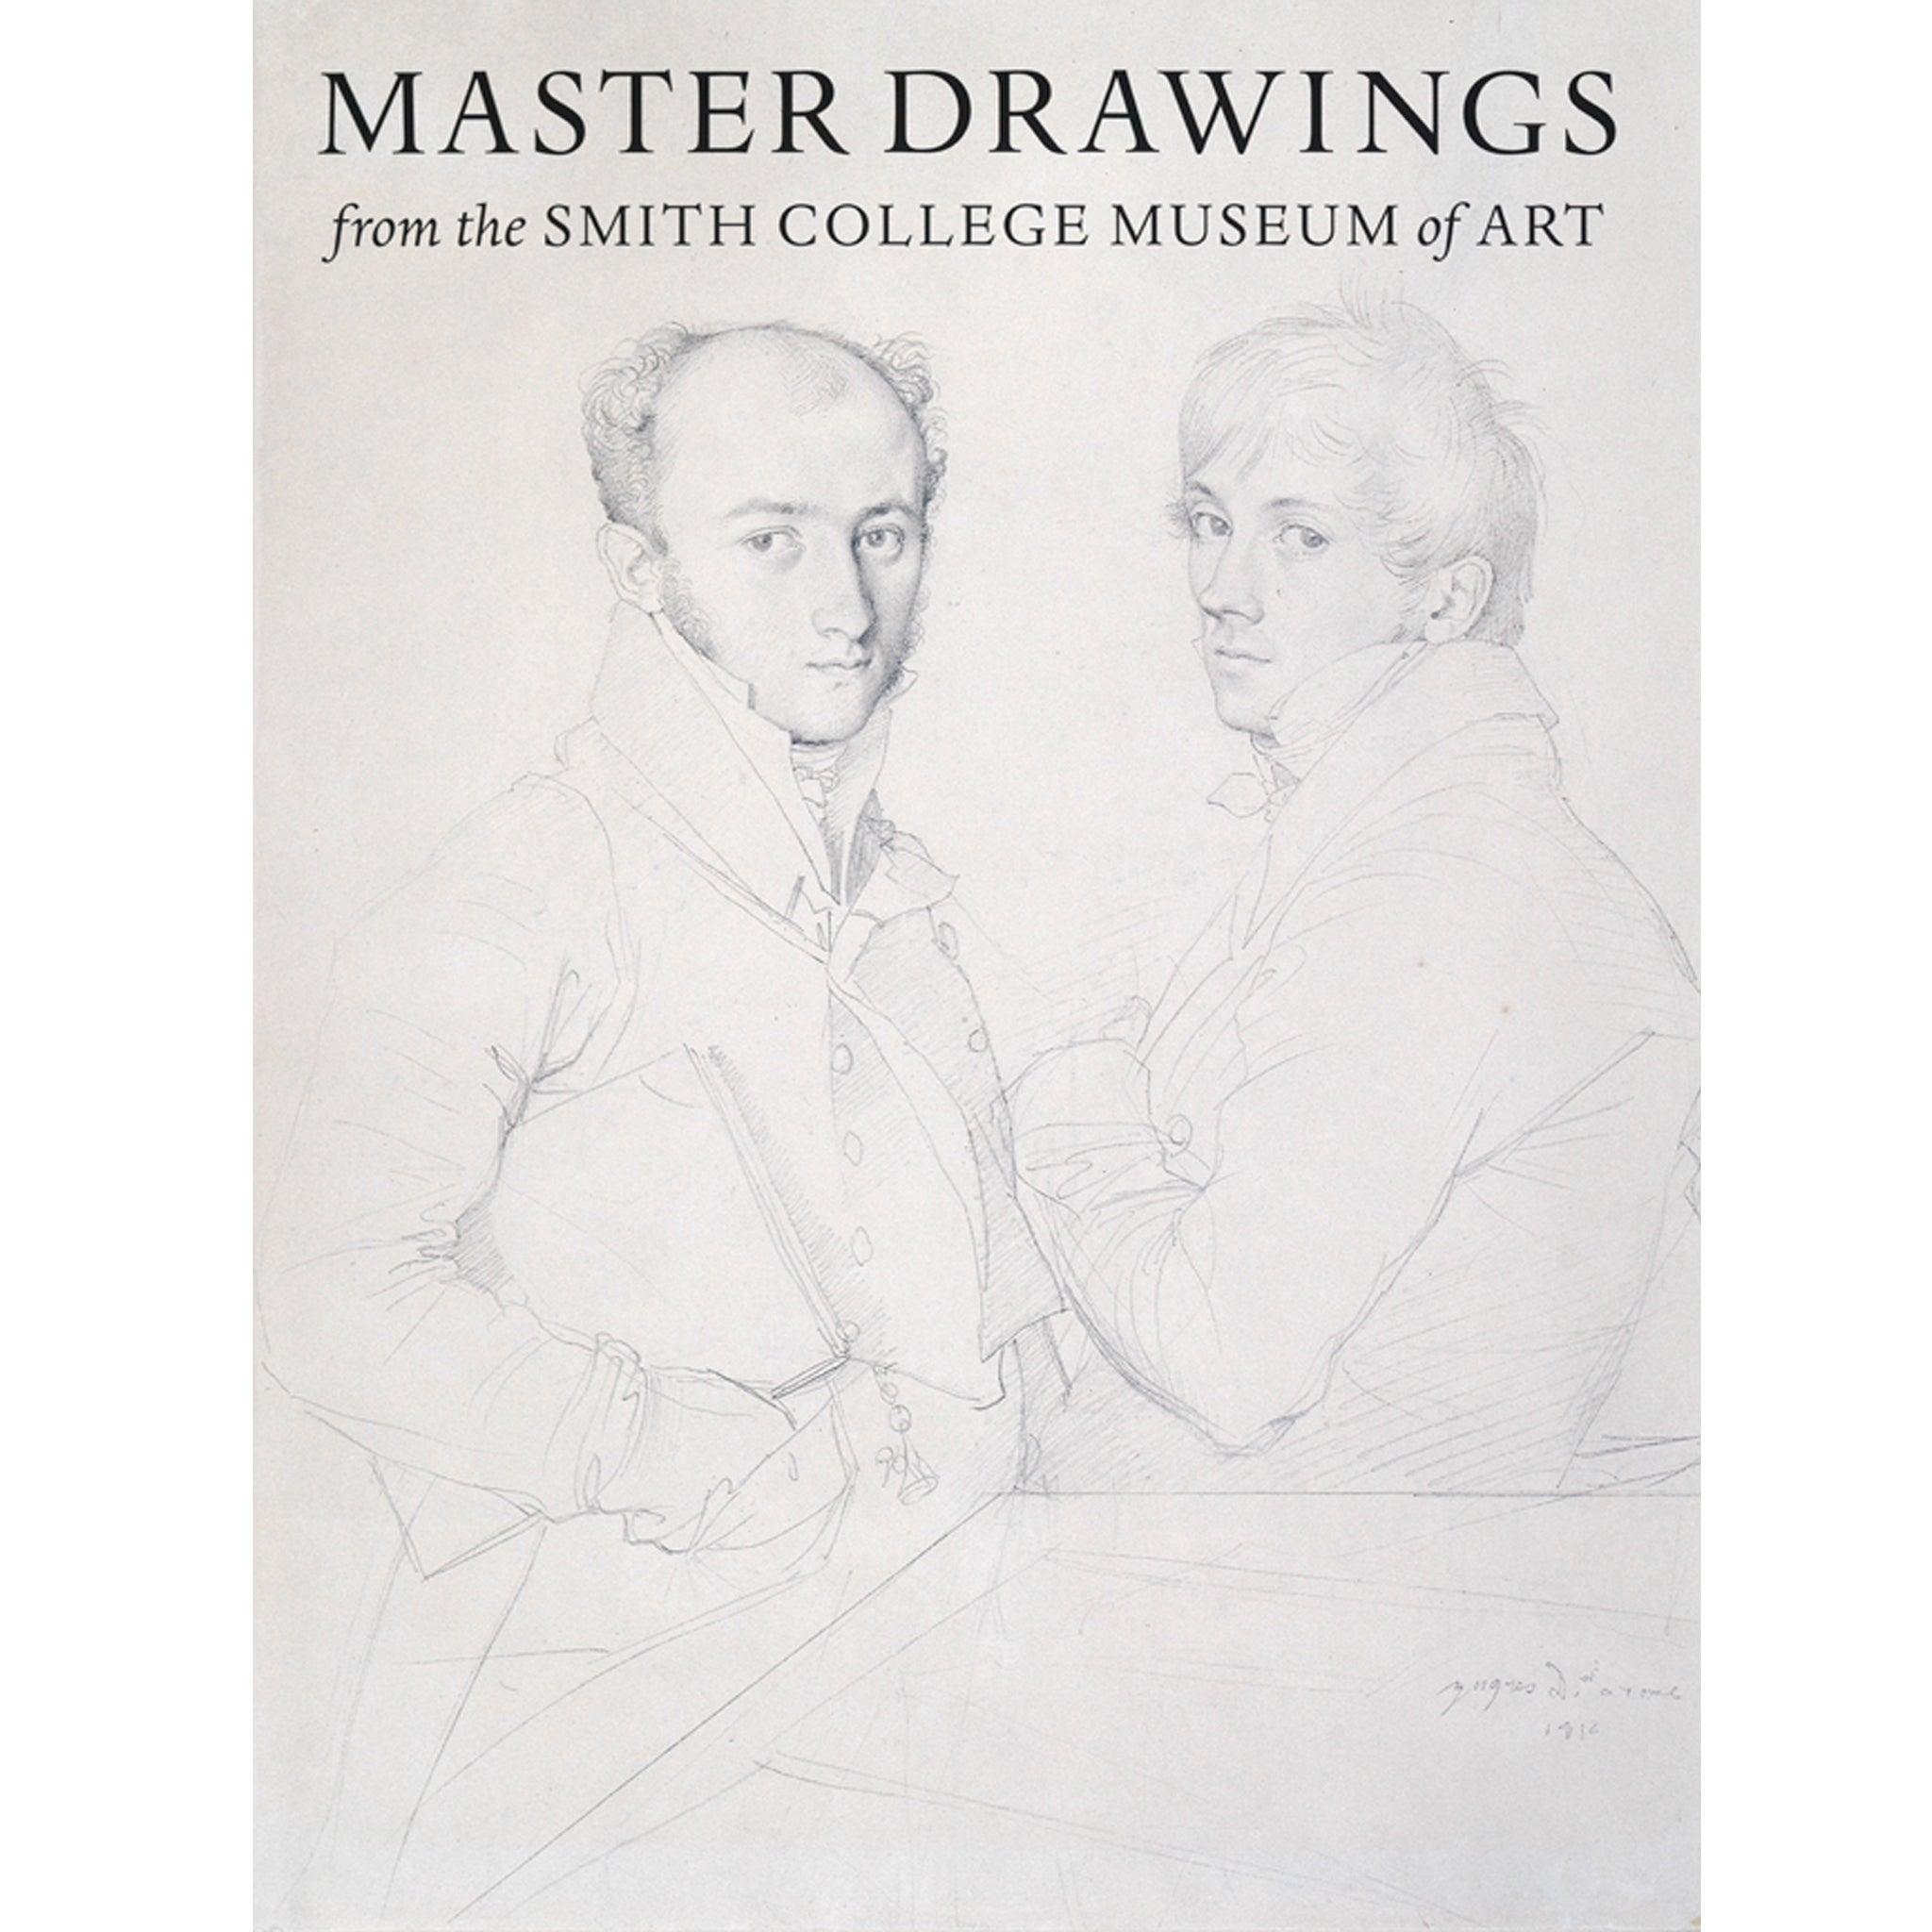 master drawings drawing collection prints watercolor line art scma smith college museum of art